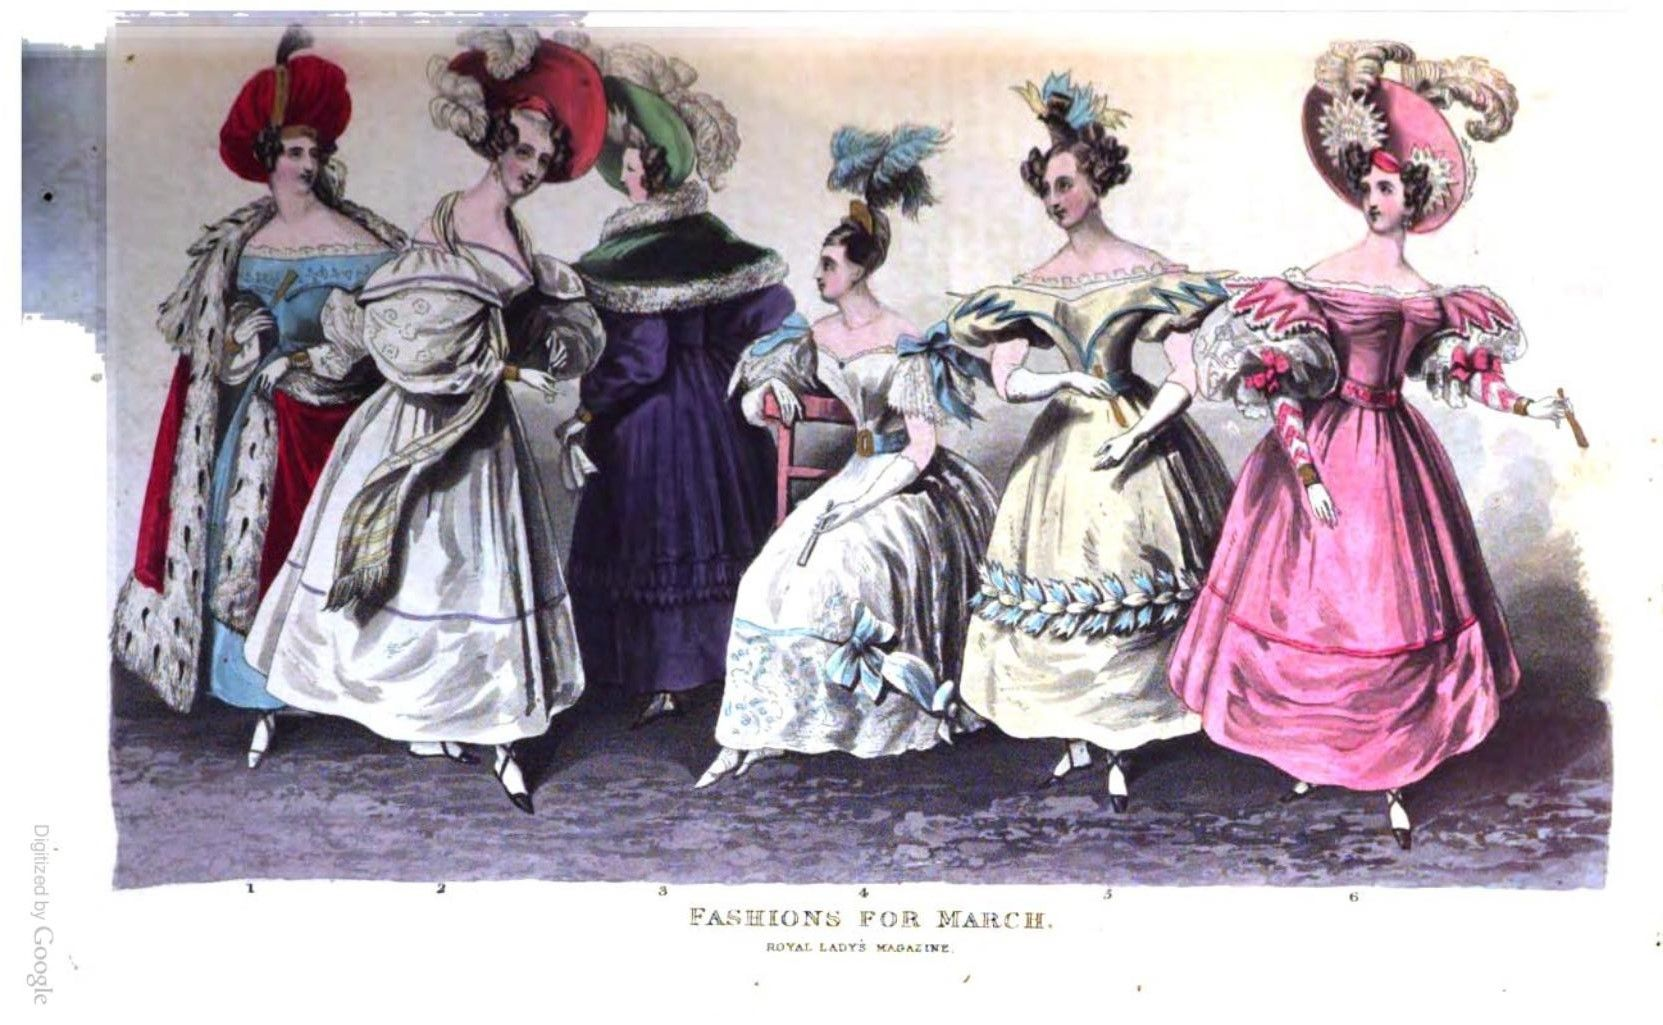 1831 Fashion The Royal Lady's magazine, and archives of the court of St. James's 1830s Fashion